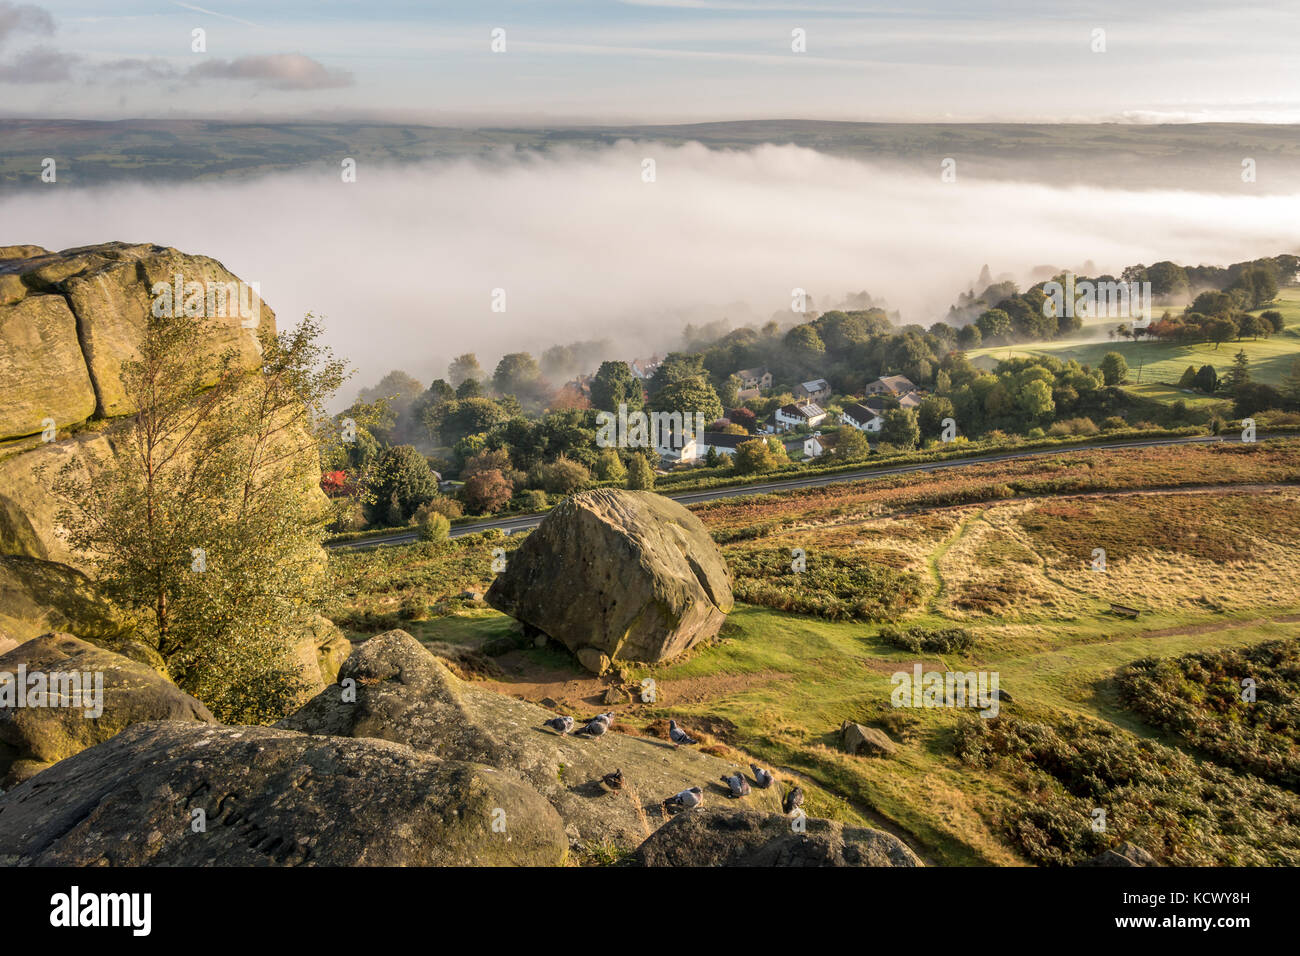 An unusual dramatic viewpoint of the Cow and Calf Rocks on rural Ilkley Moor with a cloud inversion in the Wharfedale - Stock Image